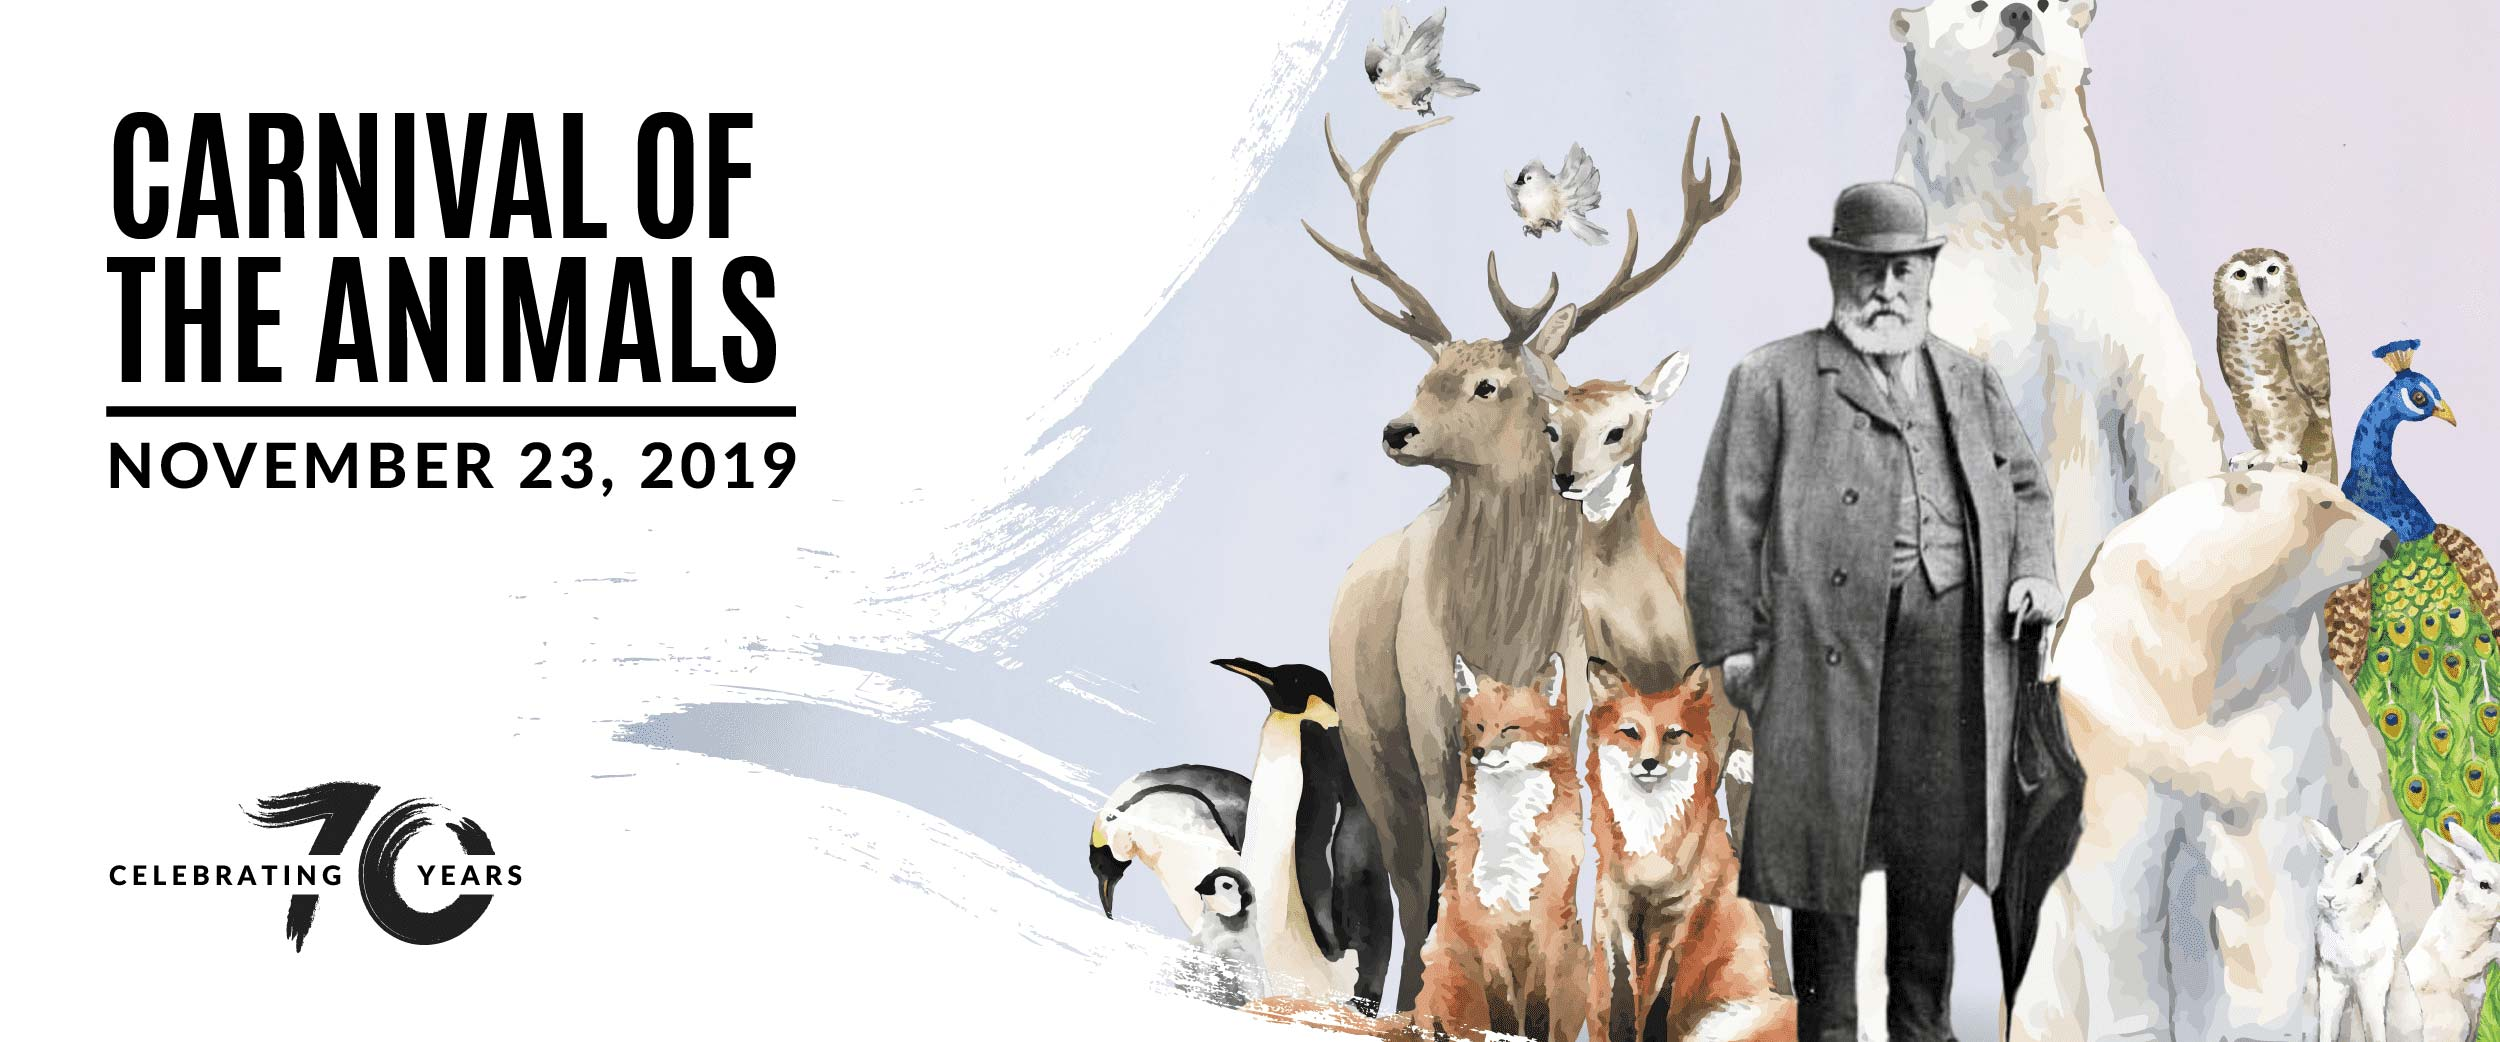 Carnival of the Animals at the Potter Center | November 23